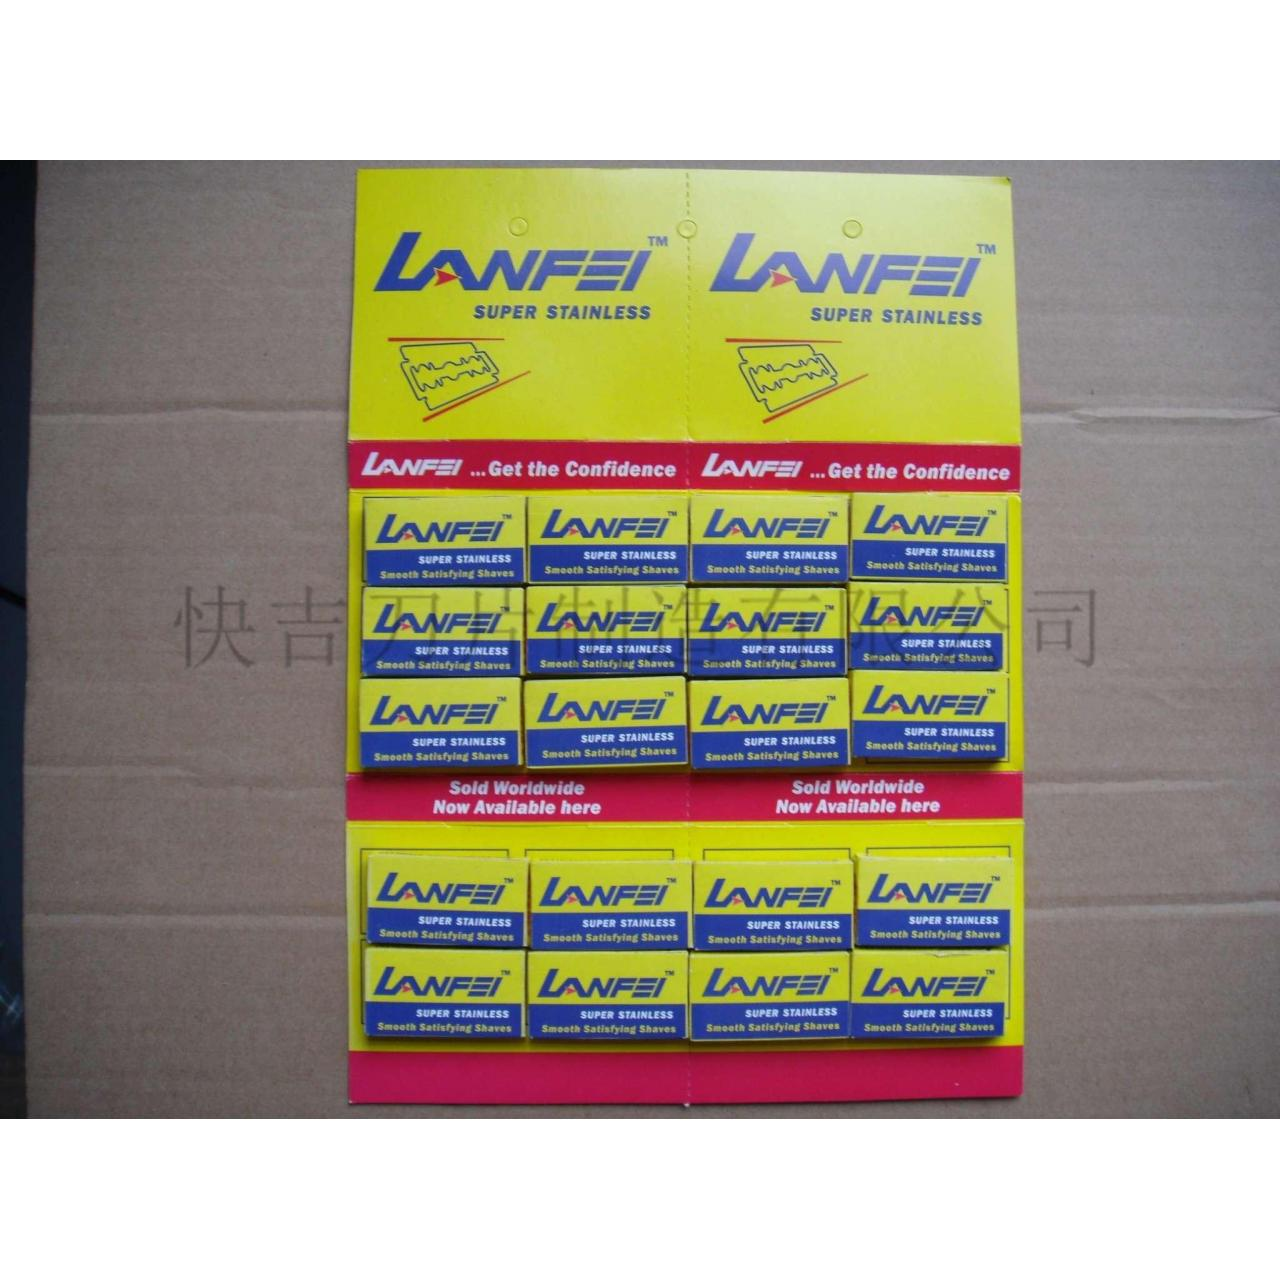 Safety Razor Blade LANFEI(Yellow Box) Manufactures